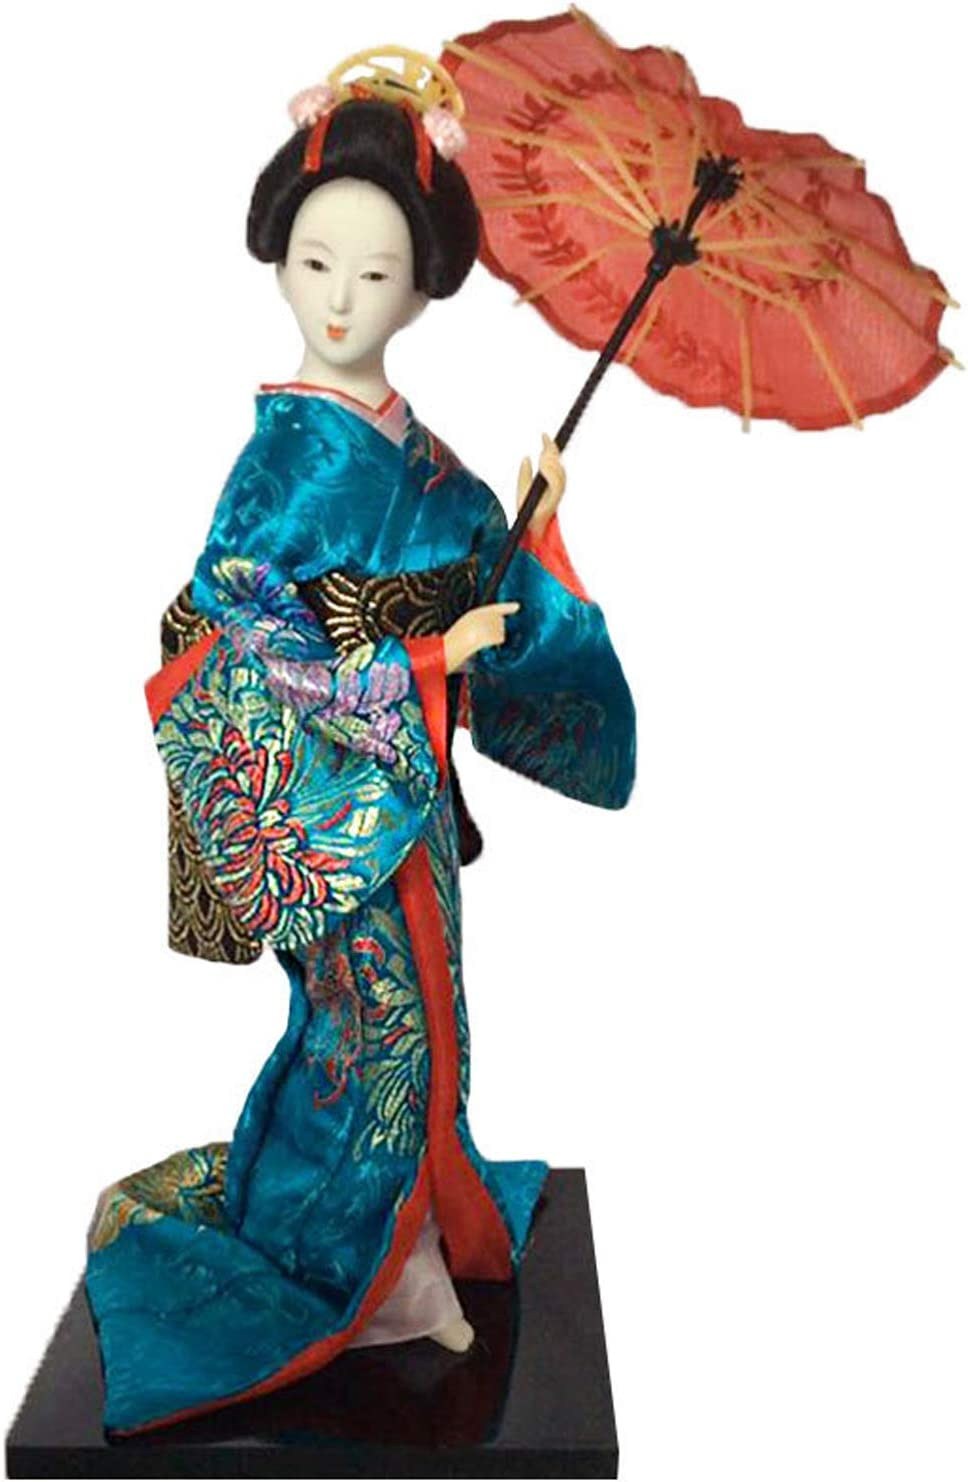 Siunwdiy 12 inch Mini Japanese San Jose Mall Geisha Collectibles Art wit Doll 70% OFF Outlet